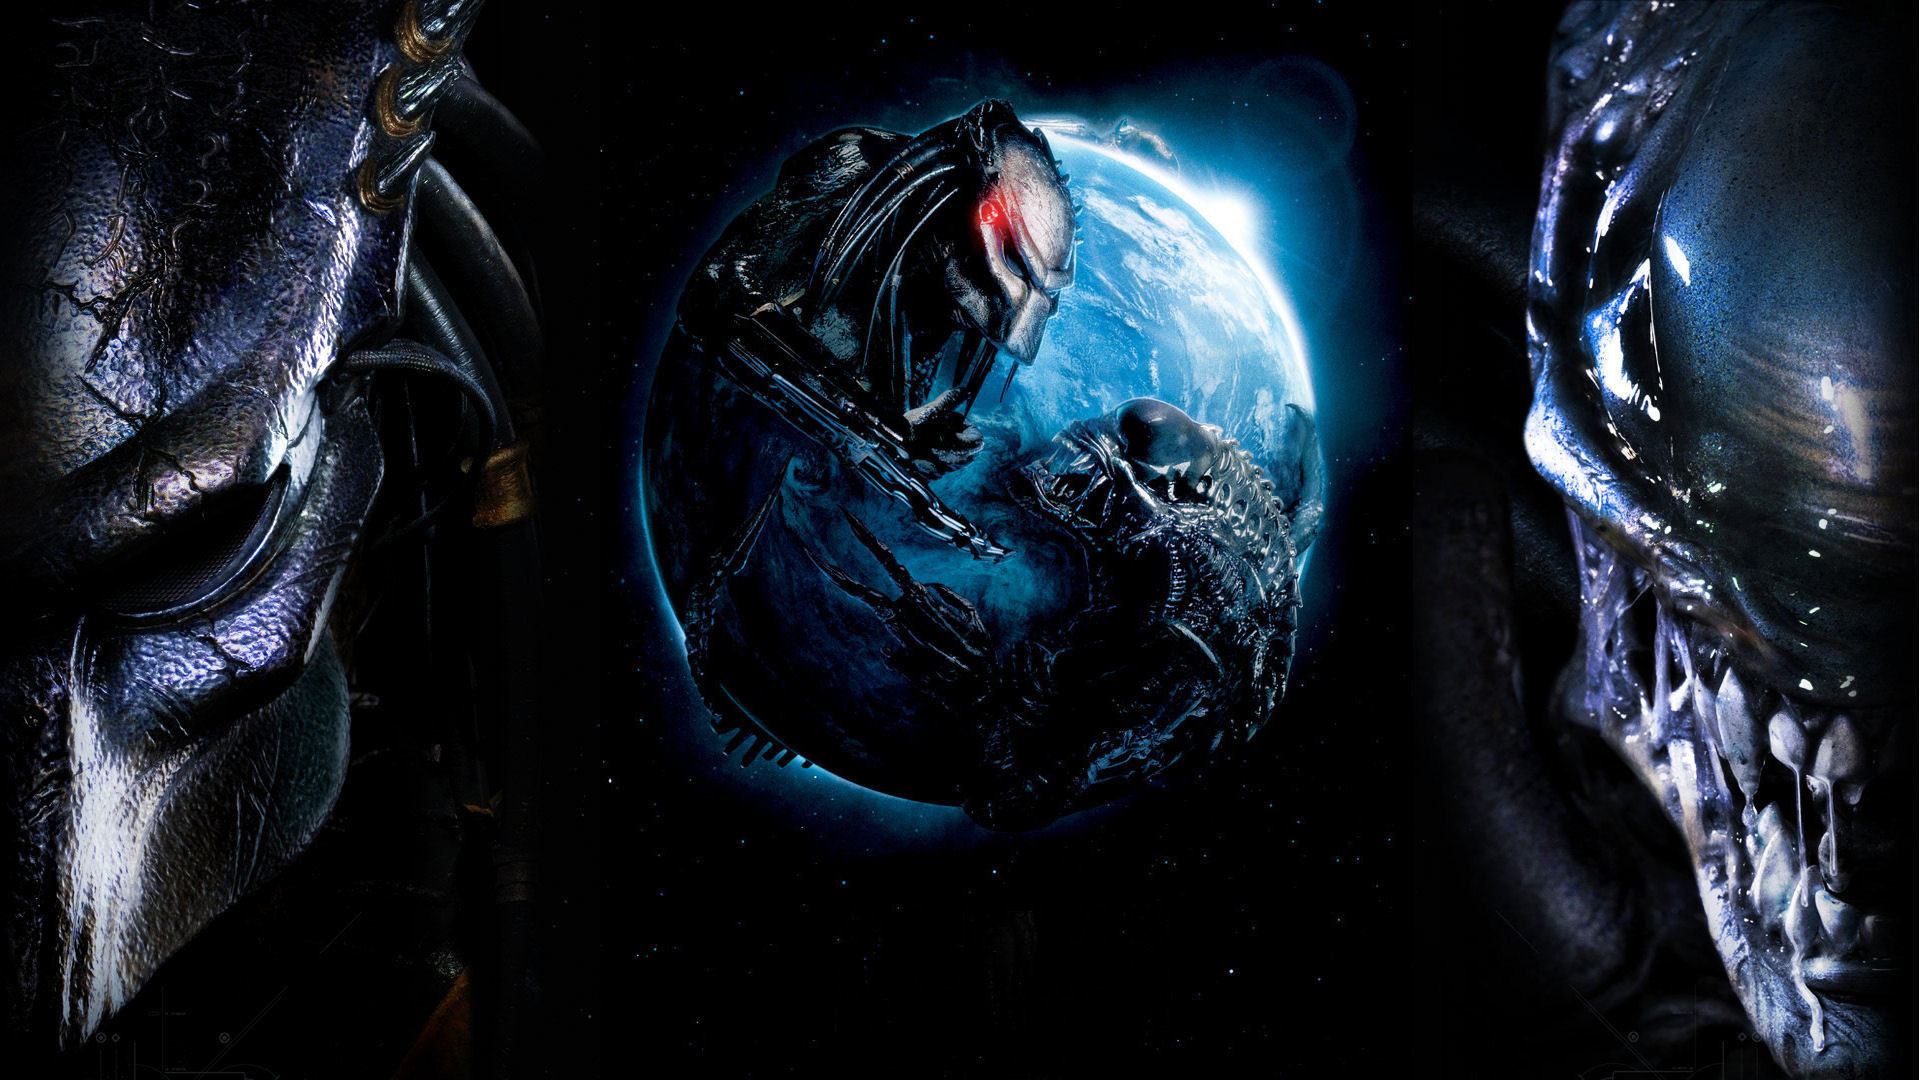 Alien vs Predator Wallpapers HD Wallpapers 1920x1080